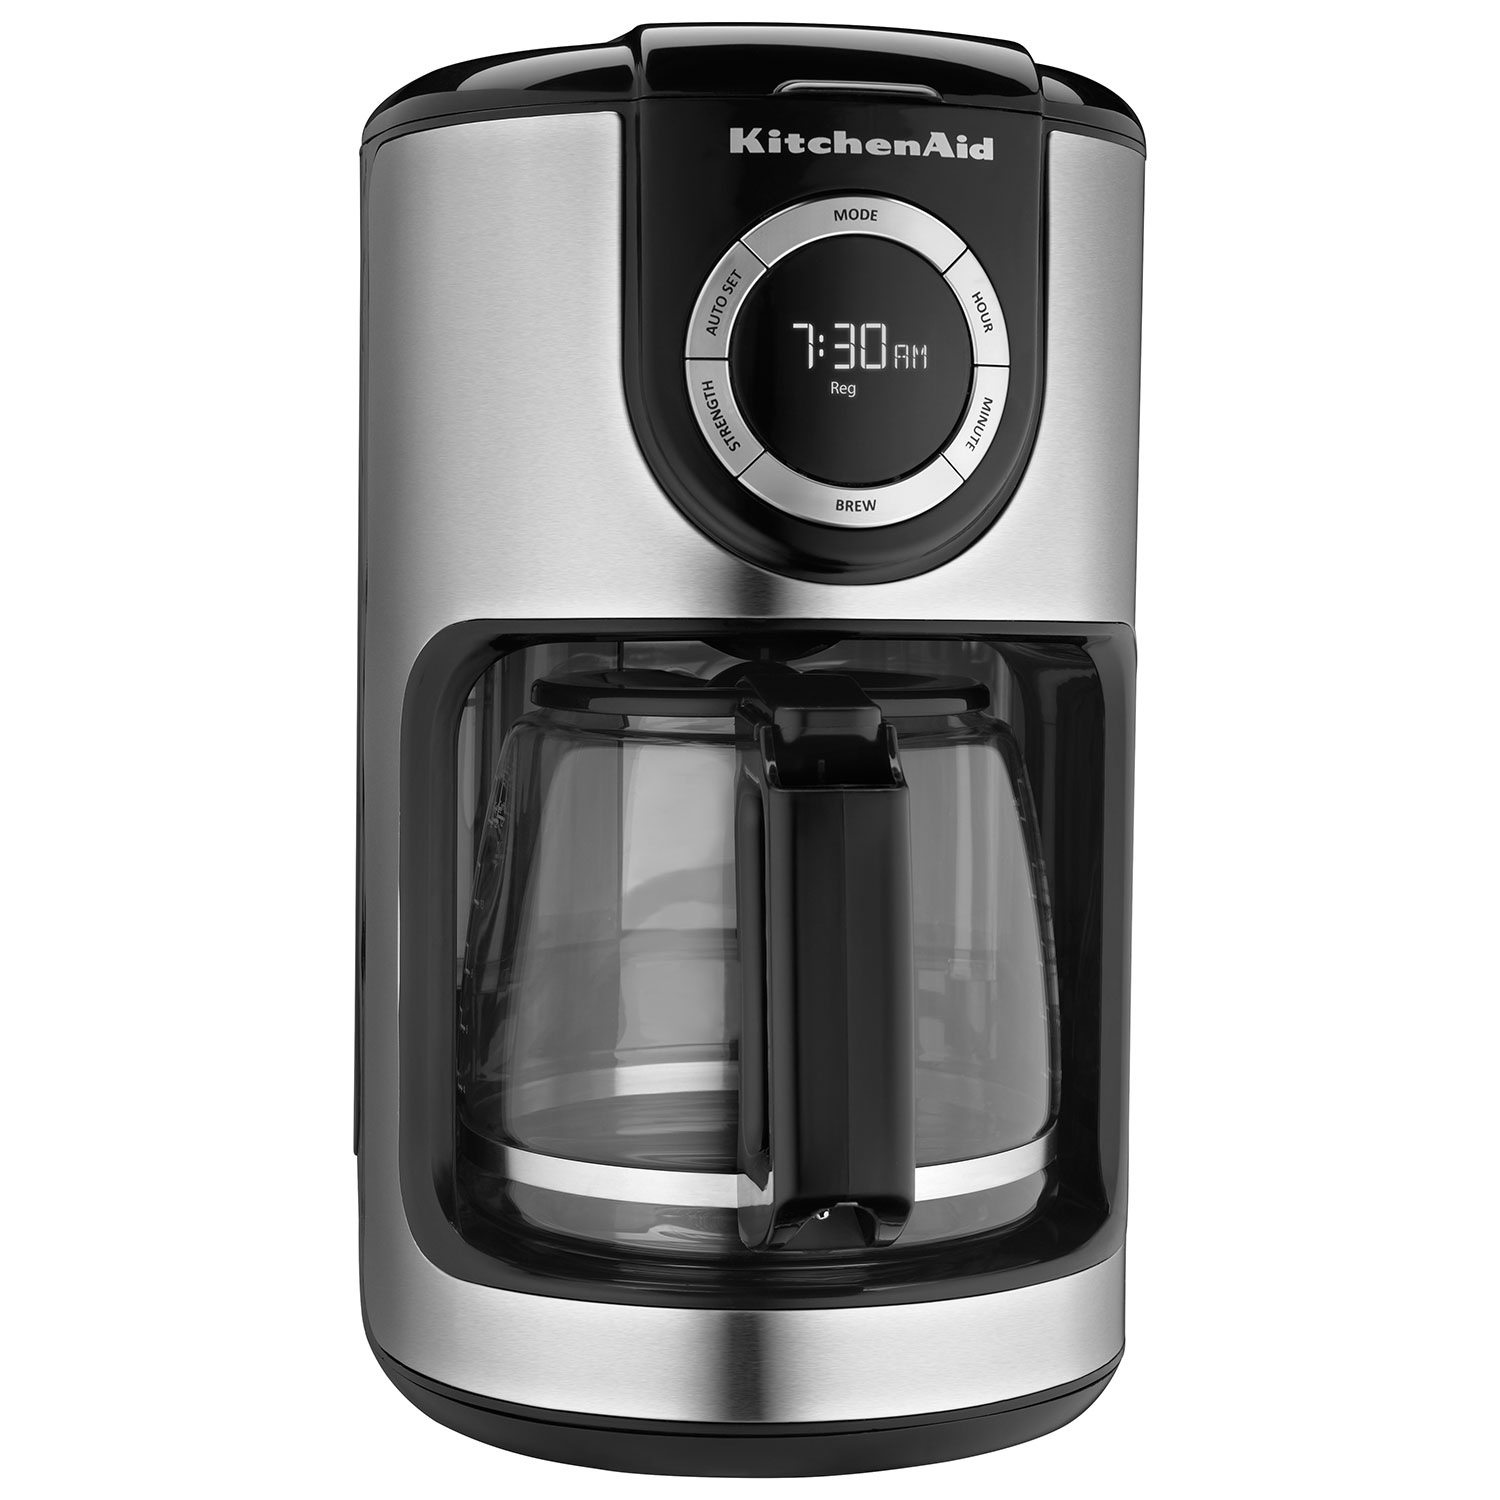 KitchenAid 12-Cup Gl Carafe Coffee Maker (KCM1202OB) - Black ... on black and decker coffee maker, braun coffee maker, thermal coffee maker, viking coffee maker, coffee maker grinder, thermal carafe coffee maker, capresso coffee maker, dual coffee maker, 14 cup coffee maker, starbucks coffee maker, automatic coffee machines, cuisinart coffee maker, blue coffee maker, 4 cup coffee makers, 1 cup coffee maker, 4 cup coffee maker, spacemaker coffee maker, vacuum coffee maker, farberware coffee maker, black & decker coffee maker, bunn coffee maker, target red coffee maker, 60 cup coffee maker, mr coffee maker, grind and brew coffee makers, 12 cup coffee maker, personal coffee maker, under cabinet coffee maker, nespresso coffee maker,